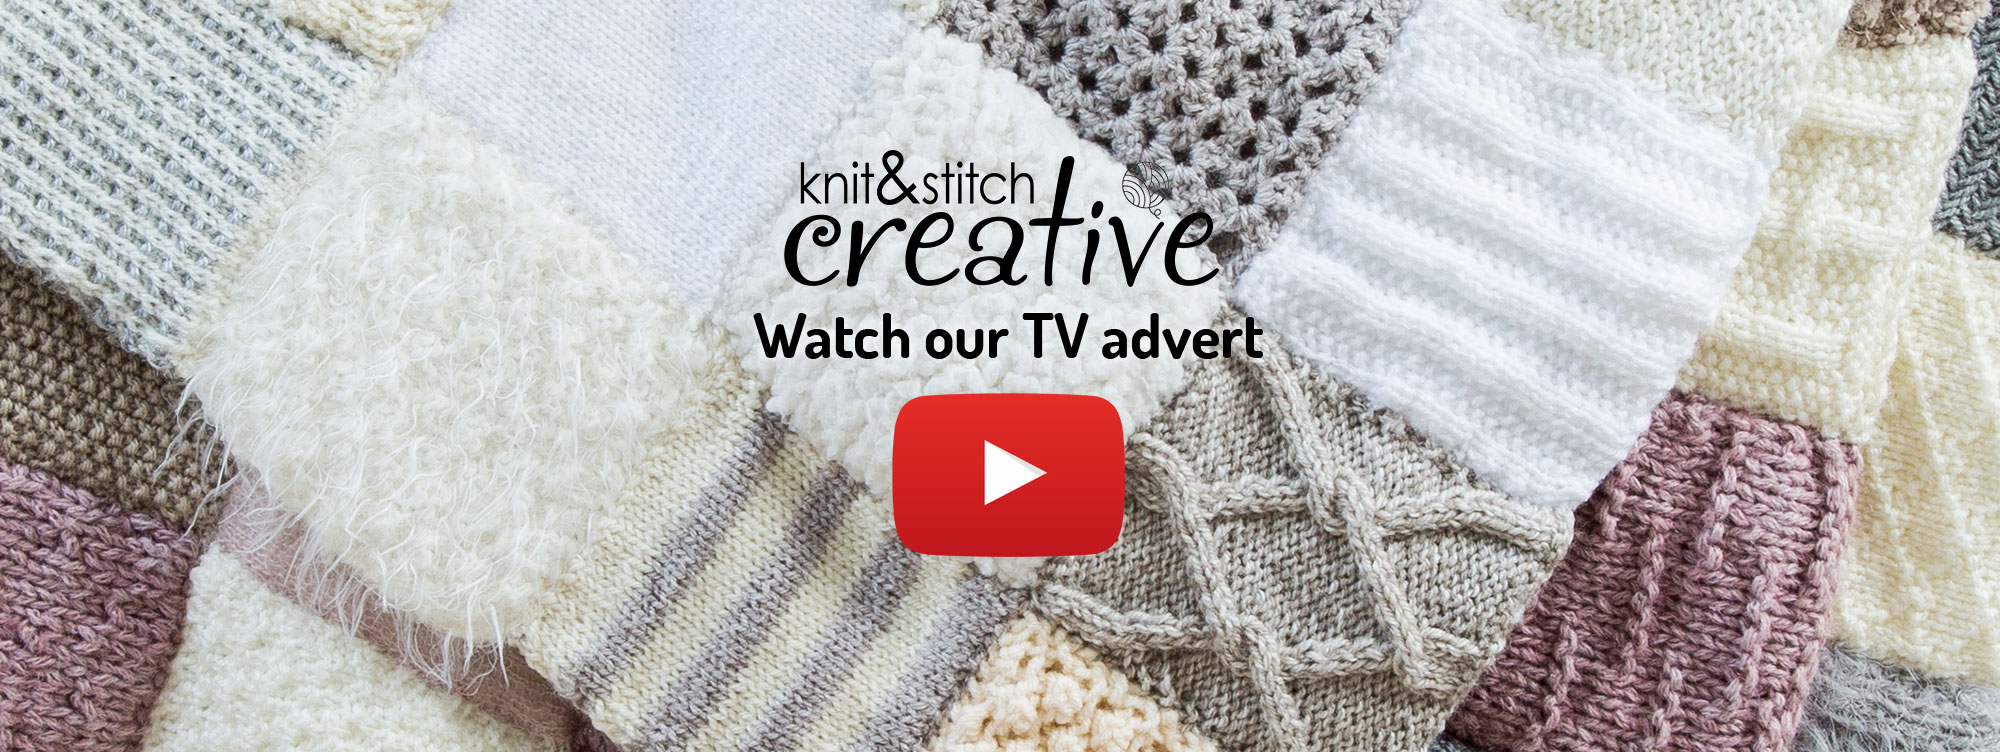 Watch our TV advert